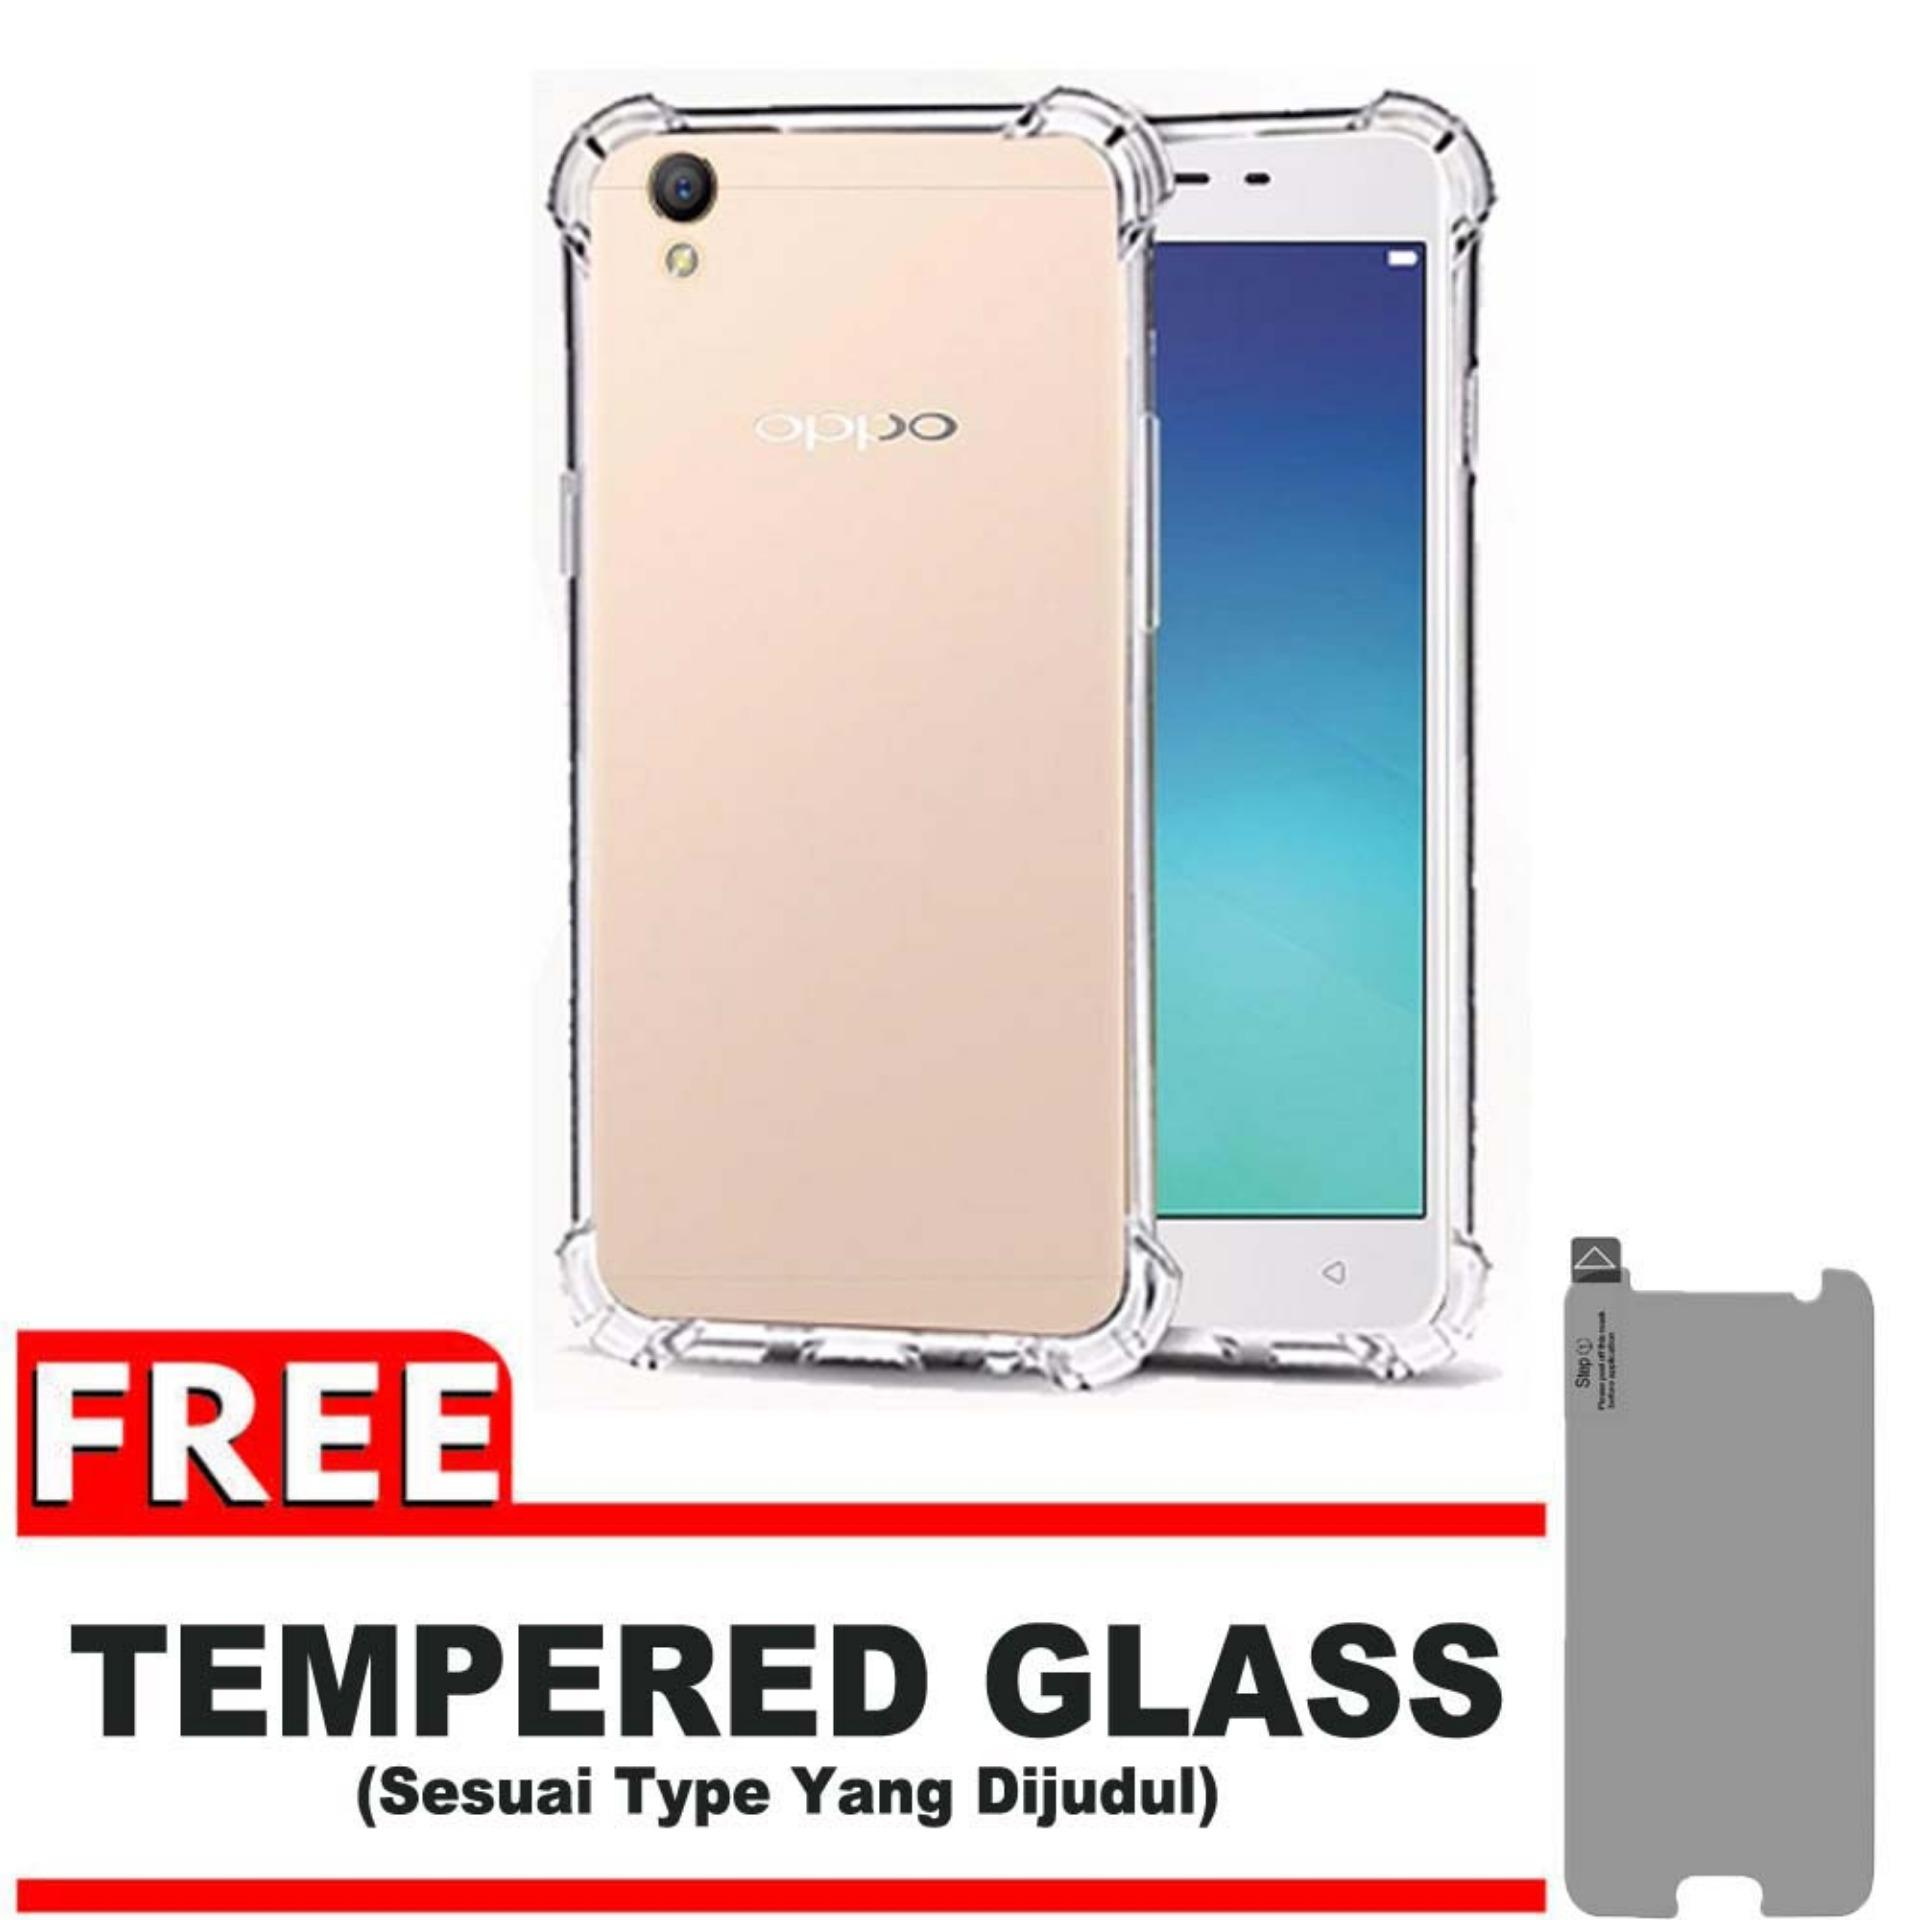 Rp 17.900 ShockCase for Oppo Neo 9 / A37 / A37T / A37F   Premium Softcase Jelly Anti Crack Shockproof - Gratis ...